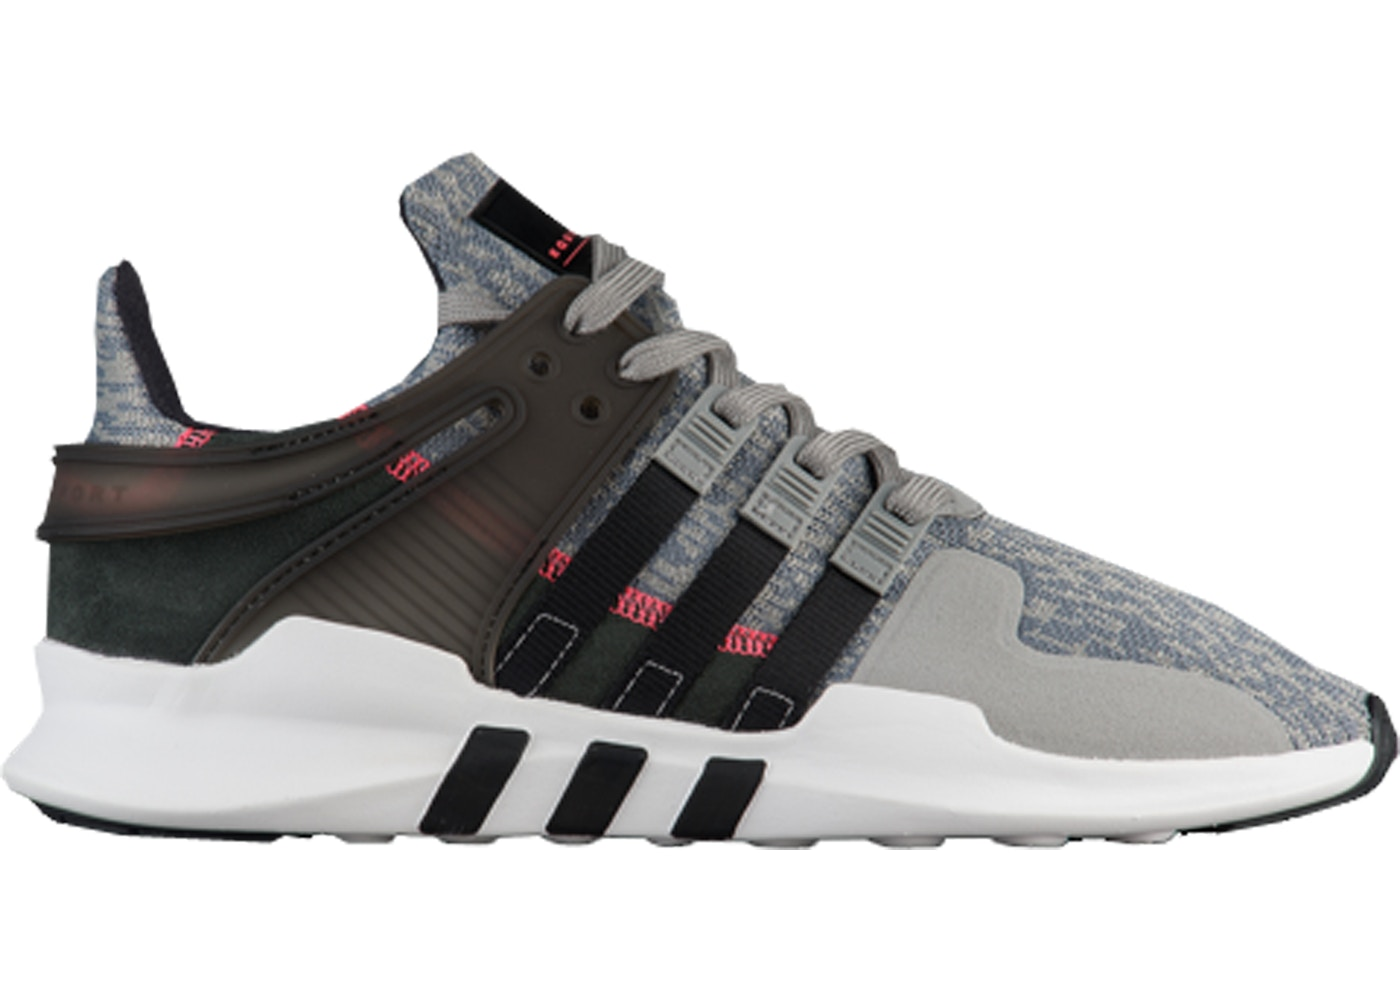 adidas eqt support adv turbo red price